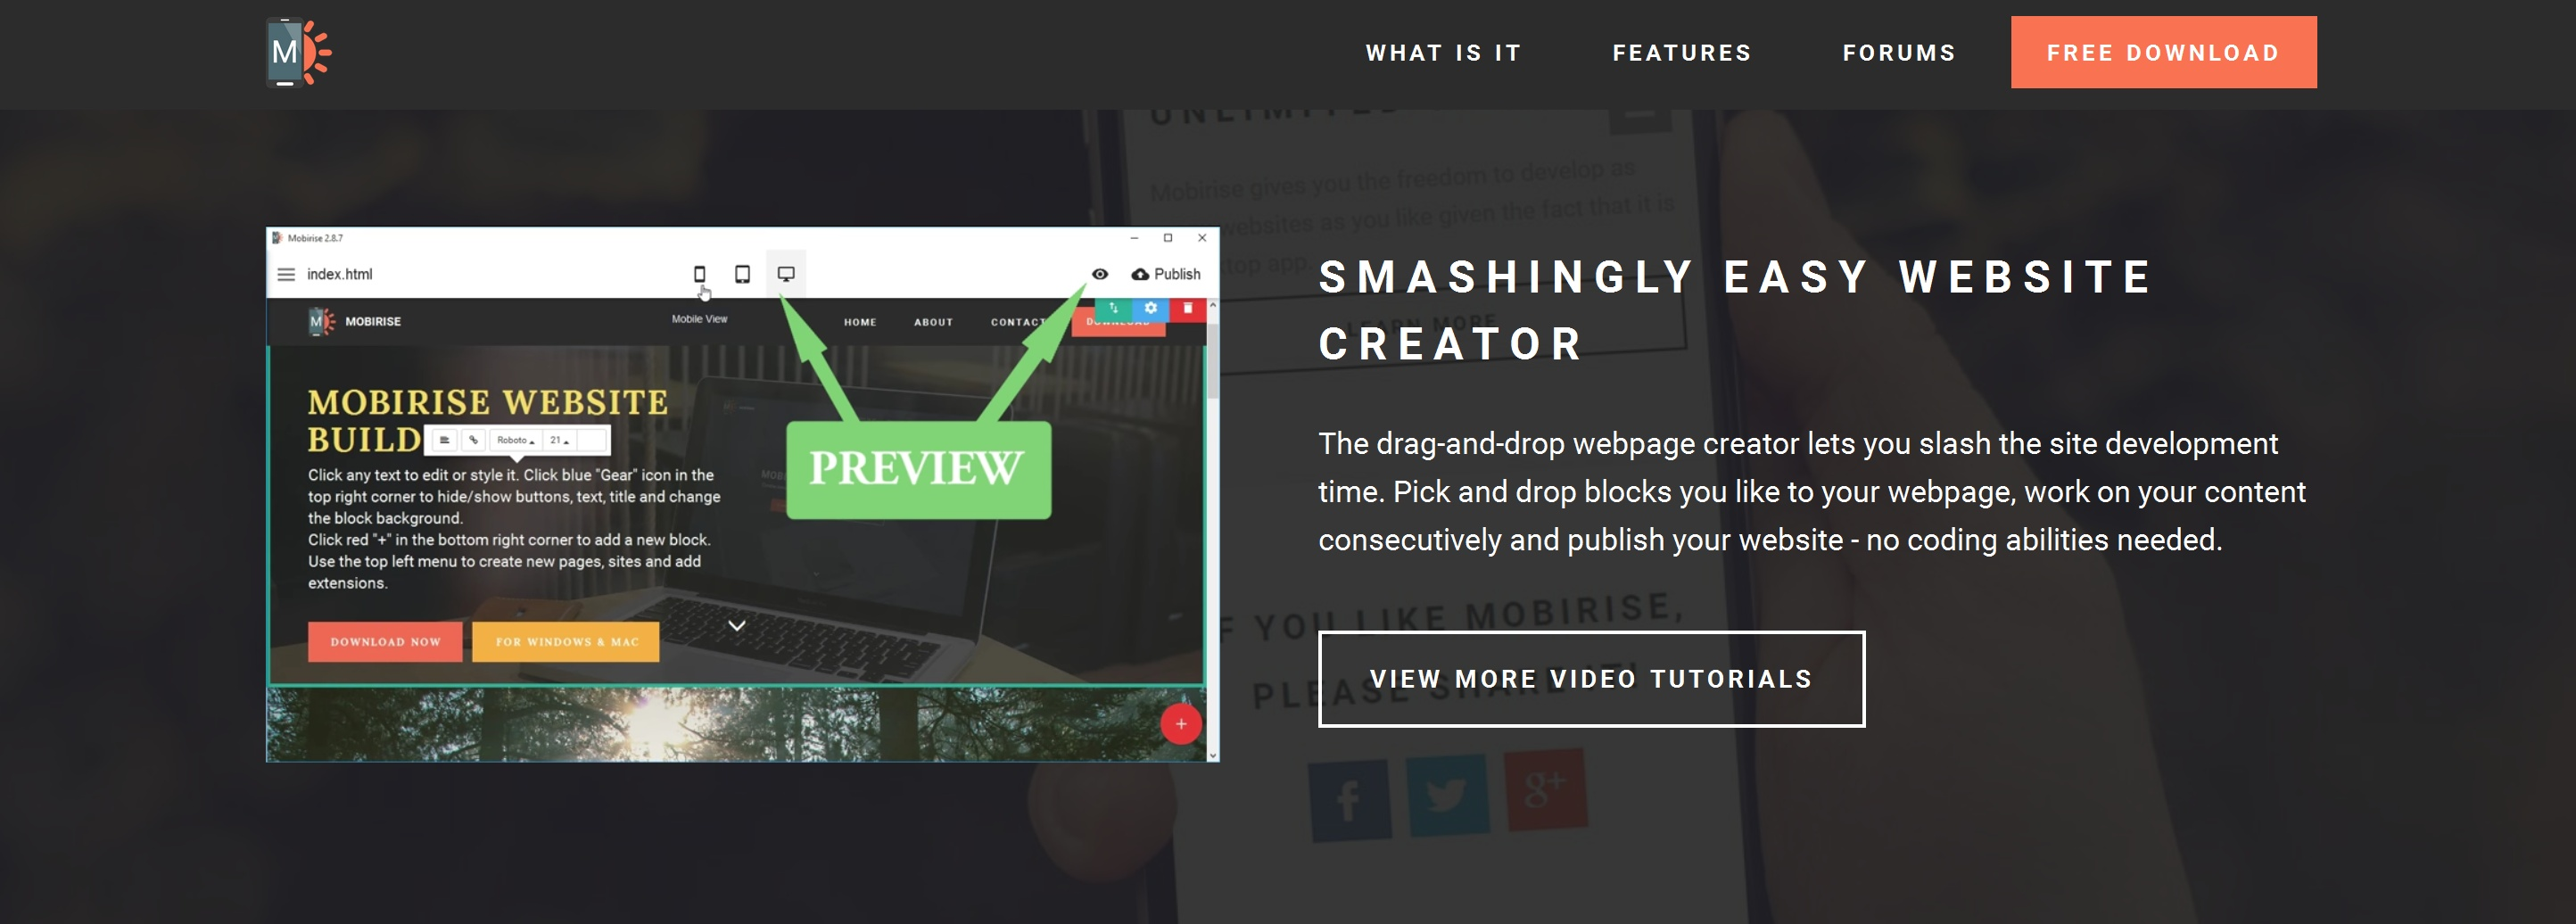 Fast and Easy Website Creator Review